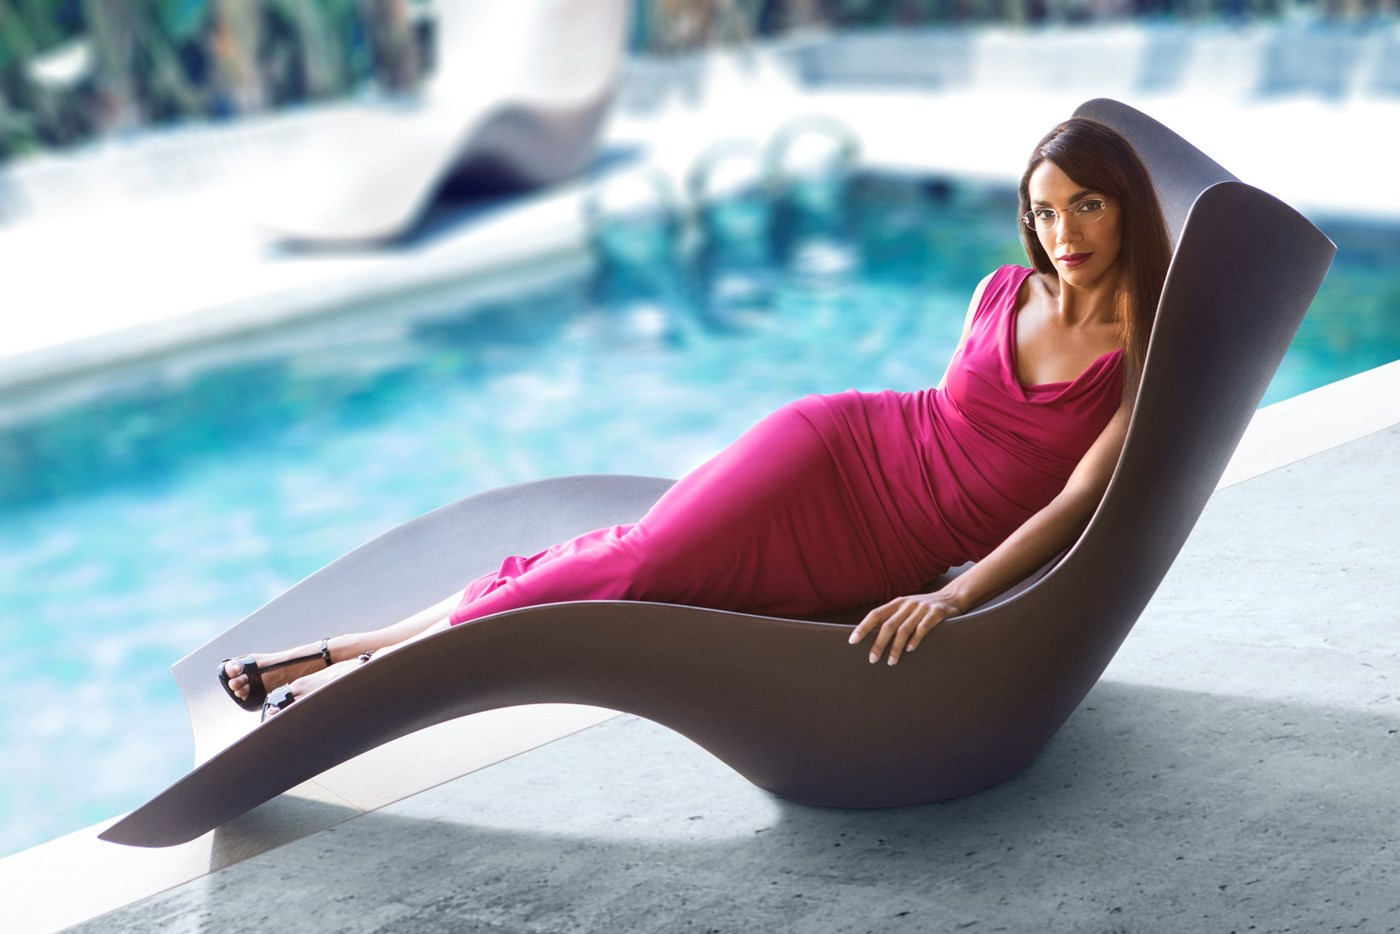 Female lounging on chair beside pool in pink dress wearing eyeglasses